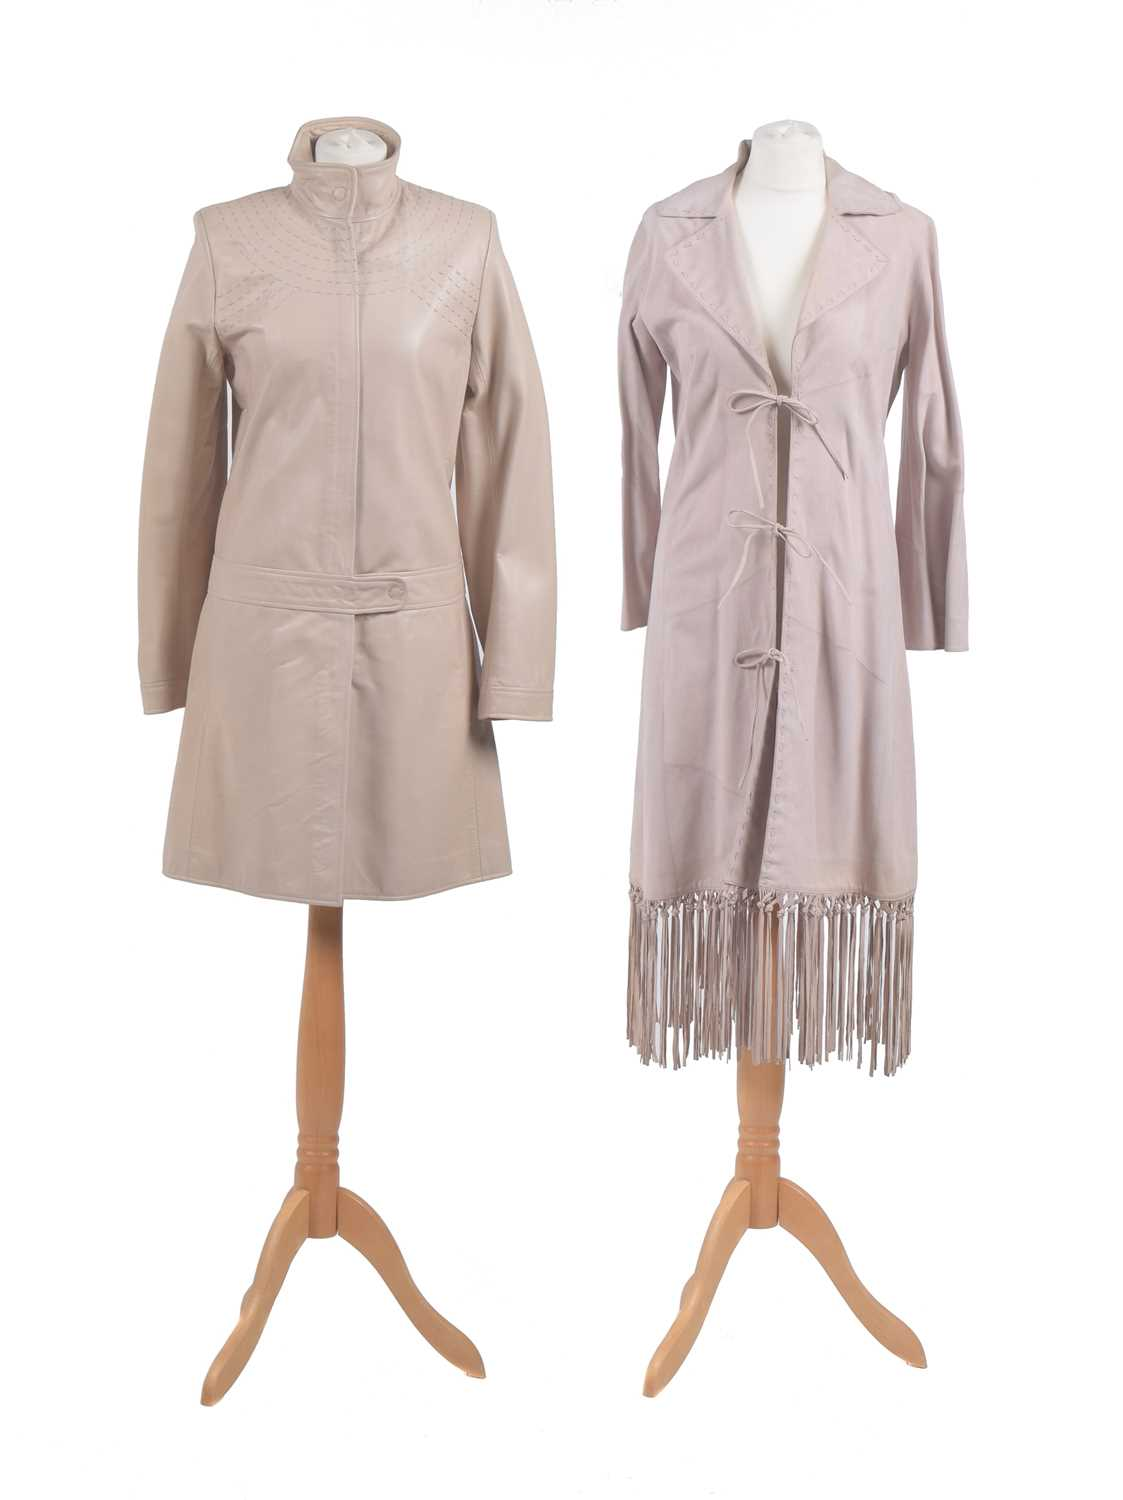 Lot 20 - Two designer coats